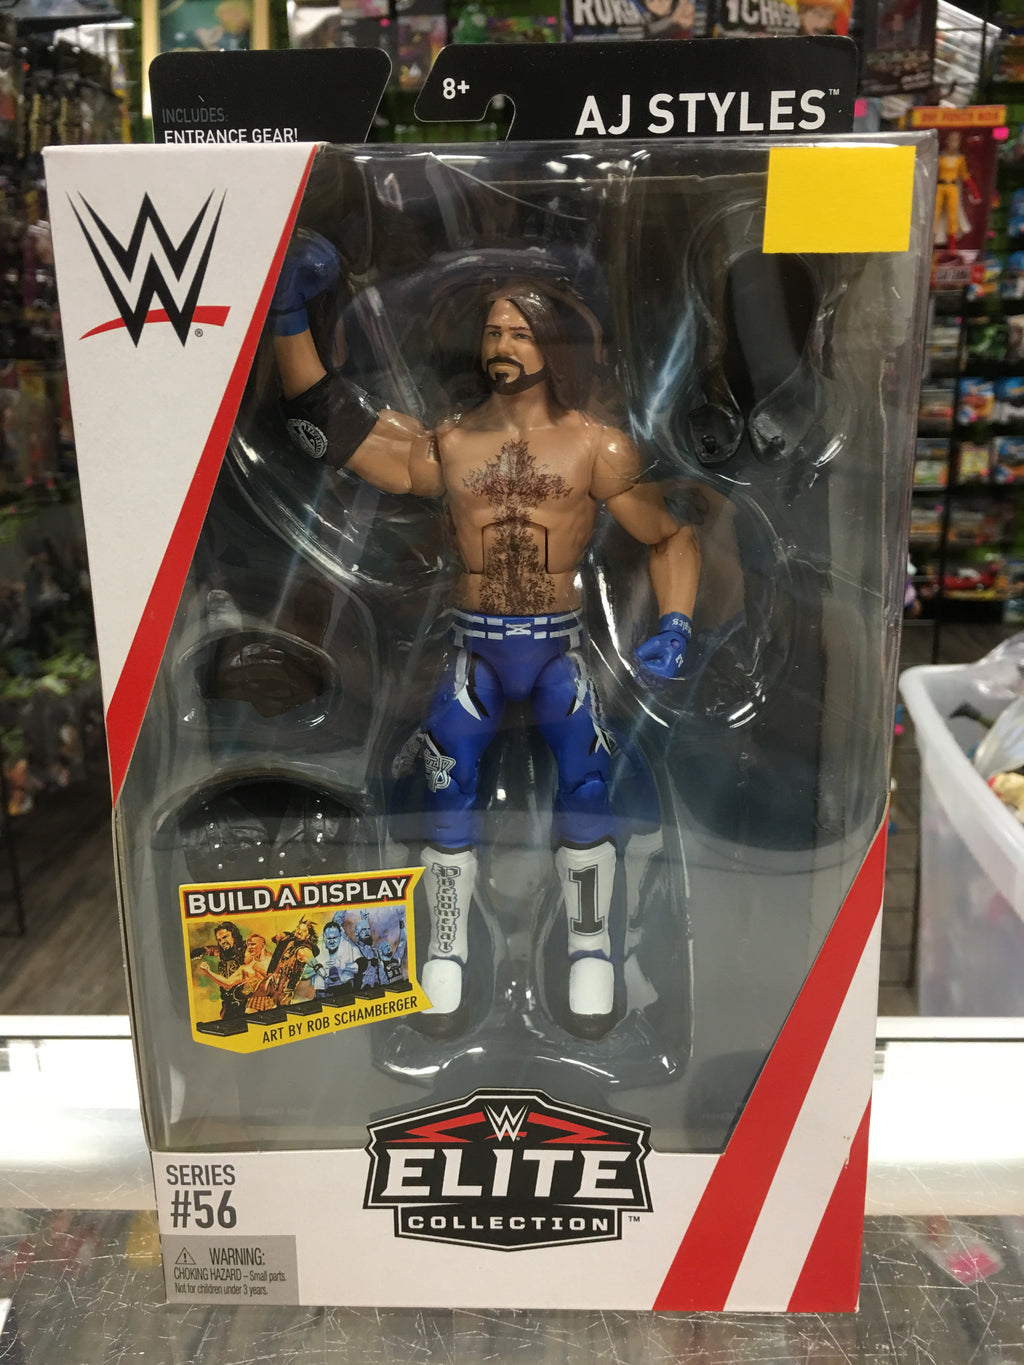 WWE Elite Collection AJ Styles